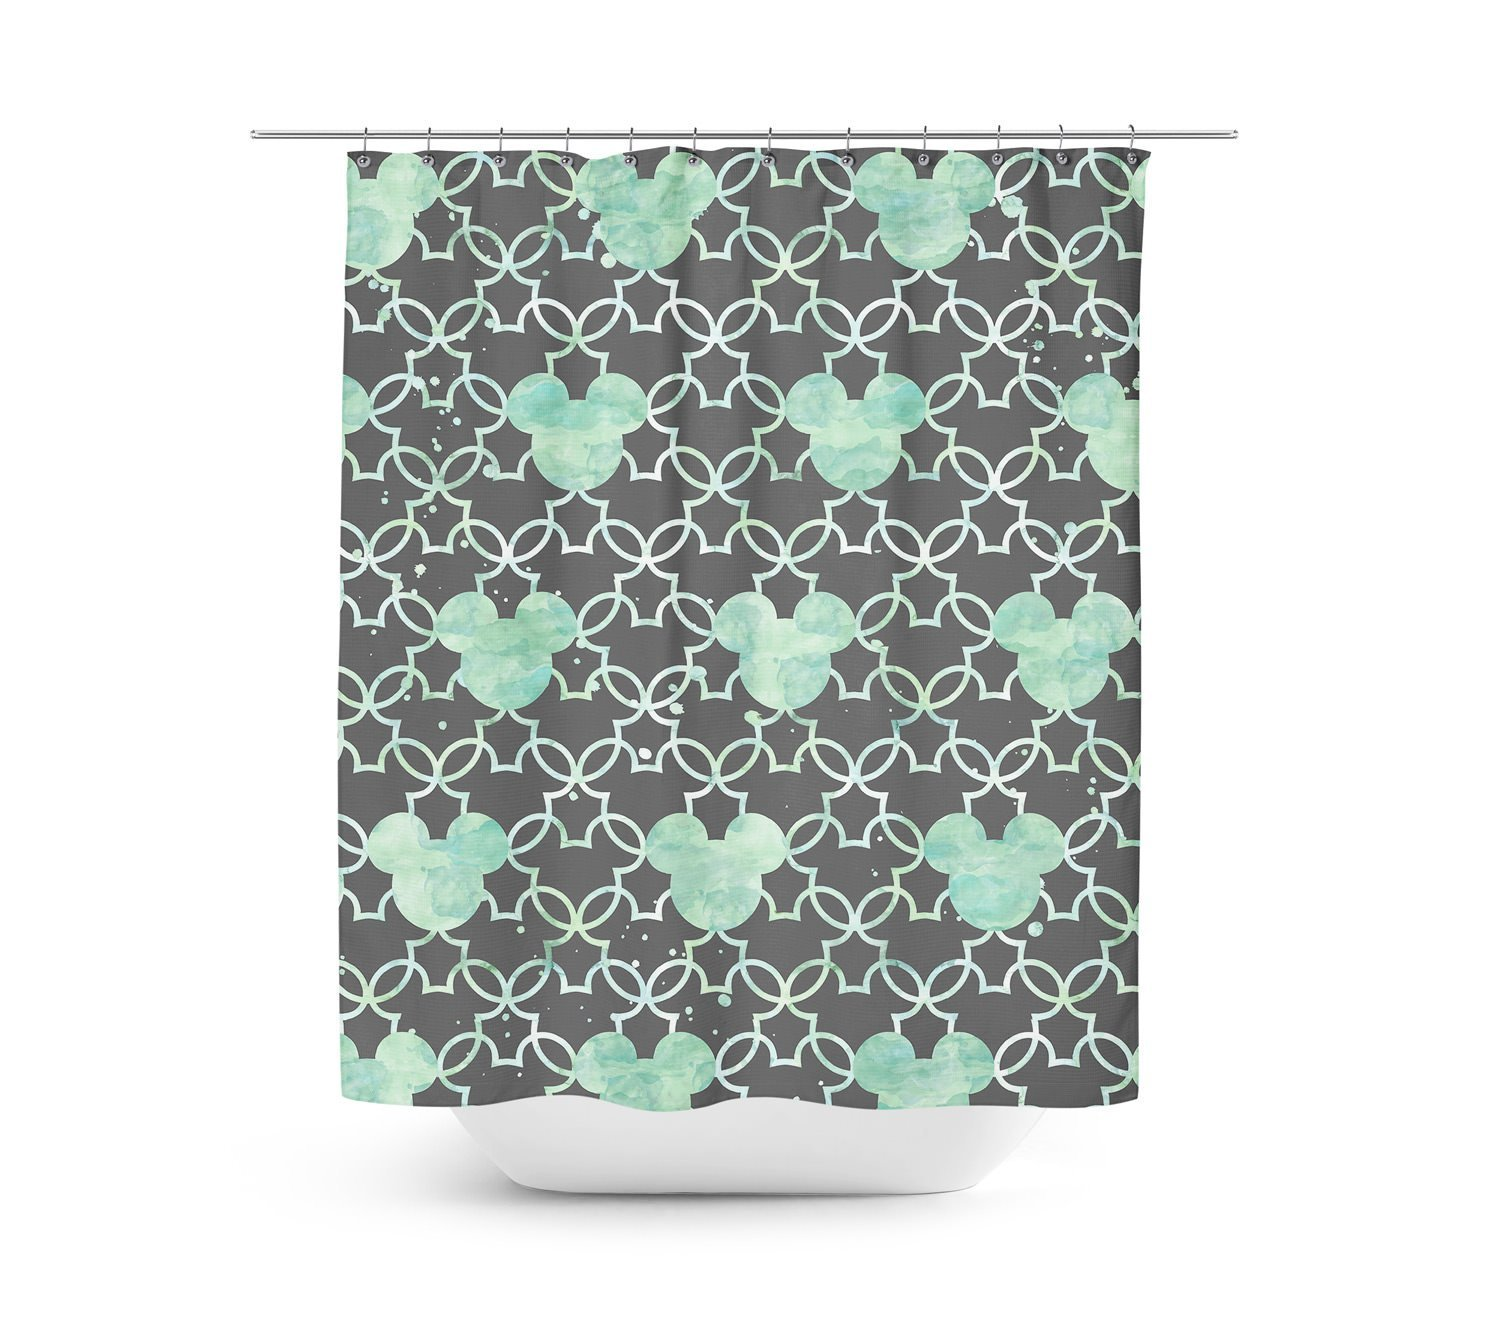 Mint Green Shower Curtain. Get Quotations  Mickey Mouse Watercolor Mint Green Shower Curtain 60x72 Medium Unique in 4 sizes for Cheap find